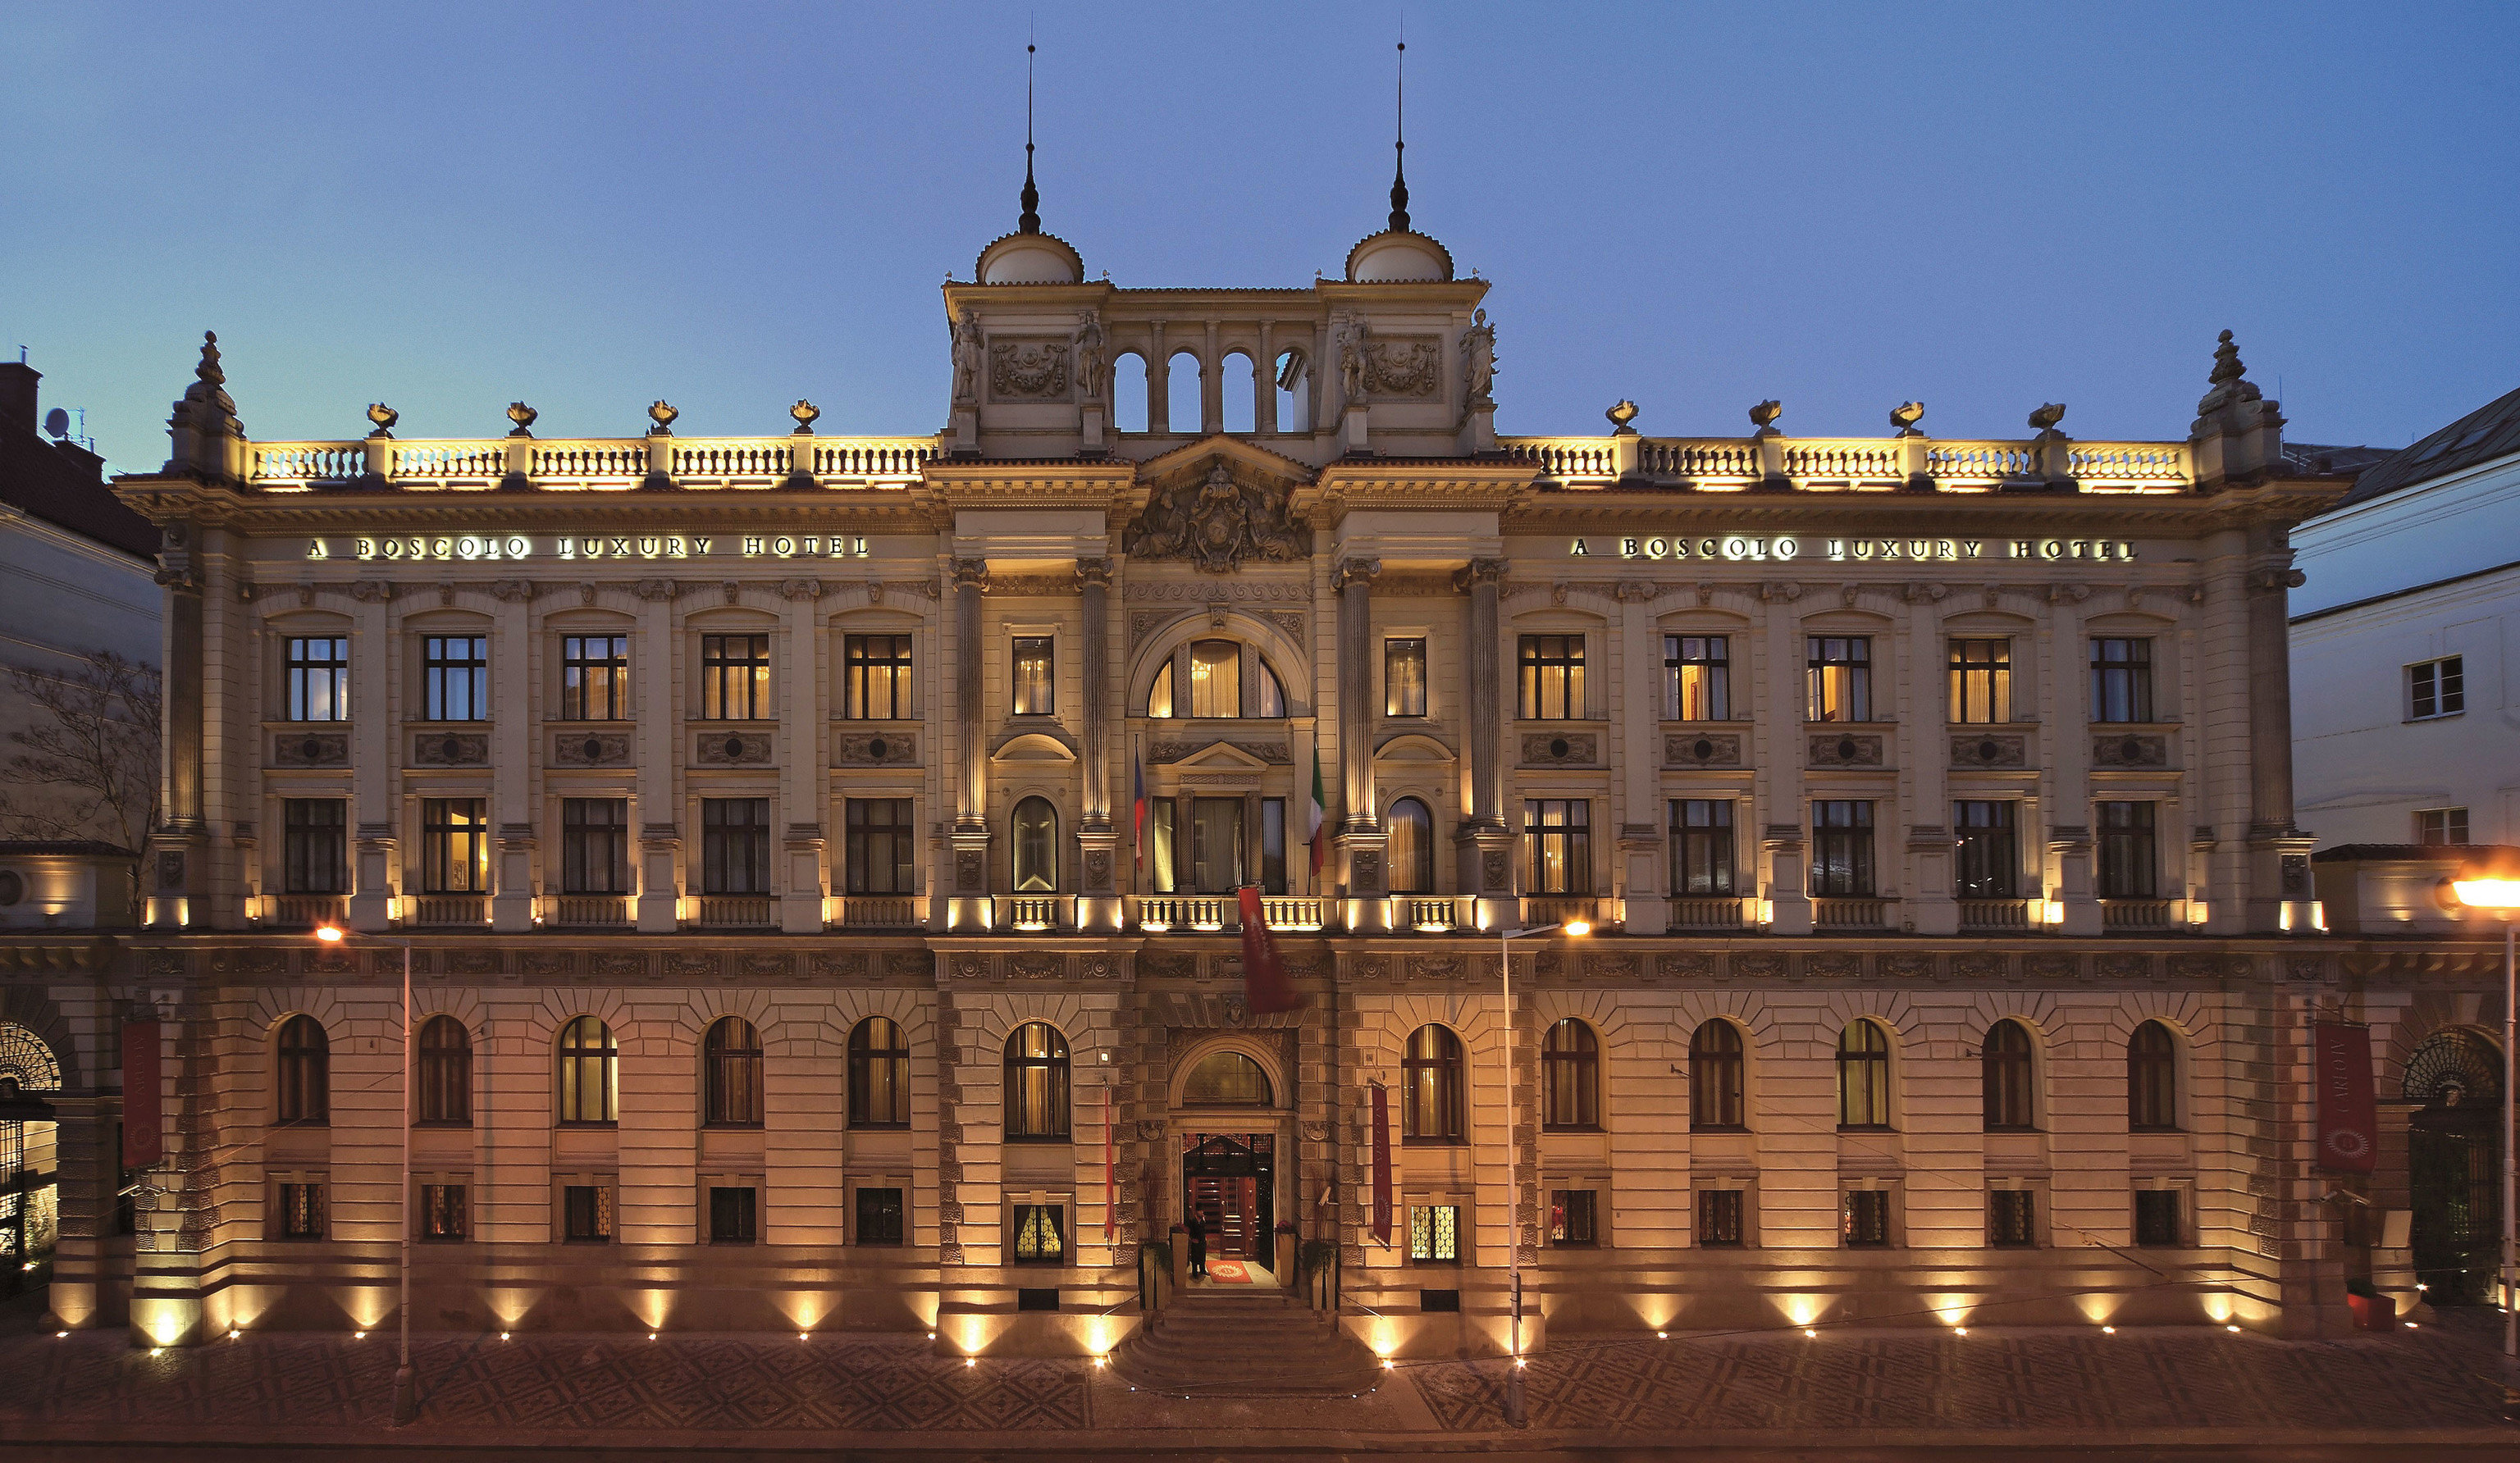 building sky landmark plaza palace classical architecture Architecture château town square government building stately home City